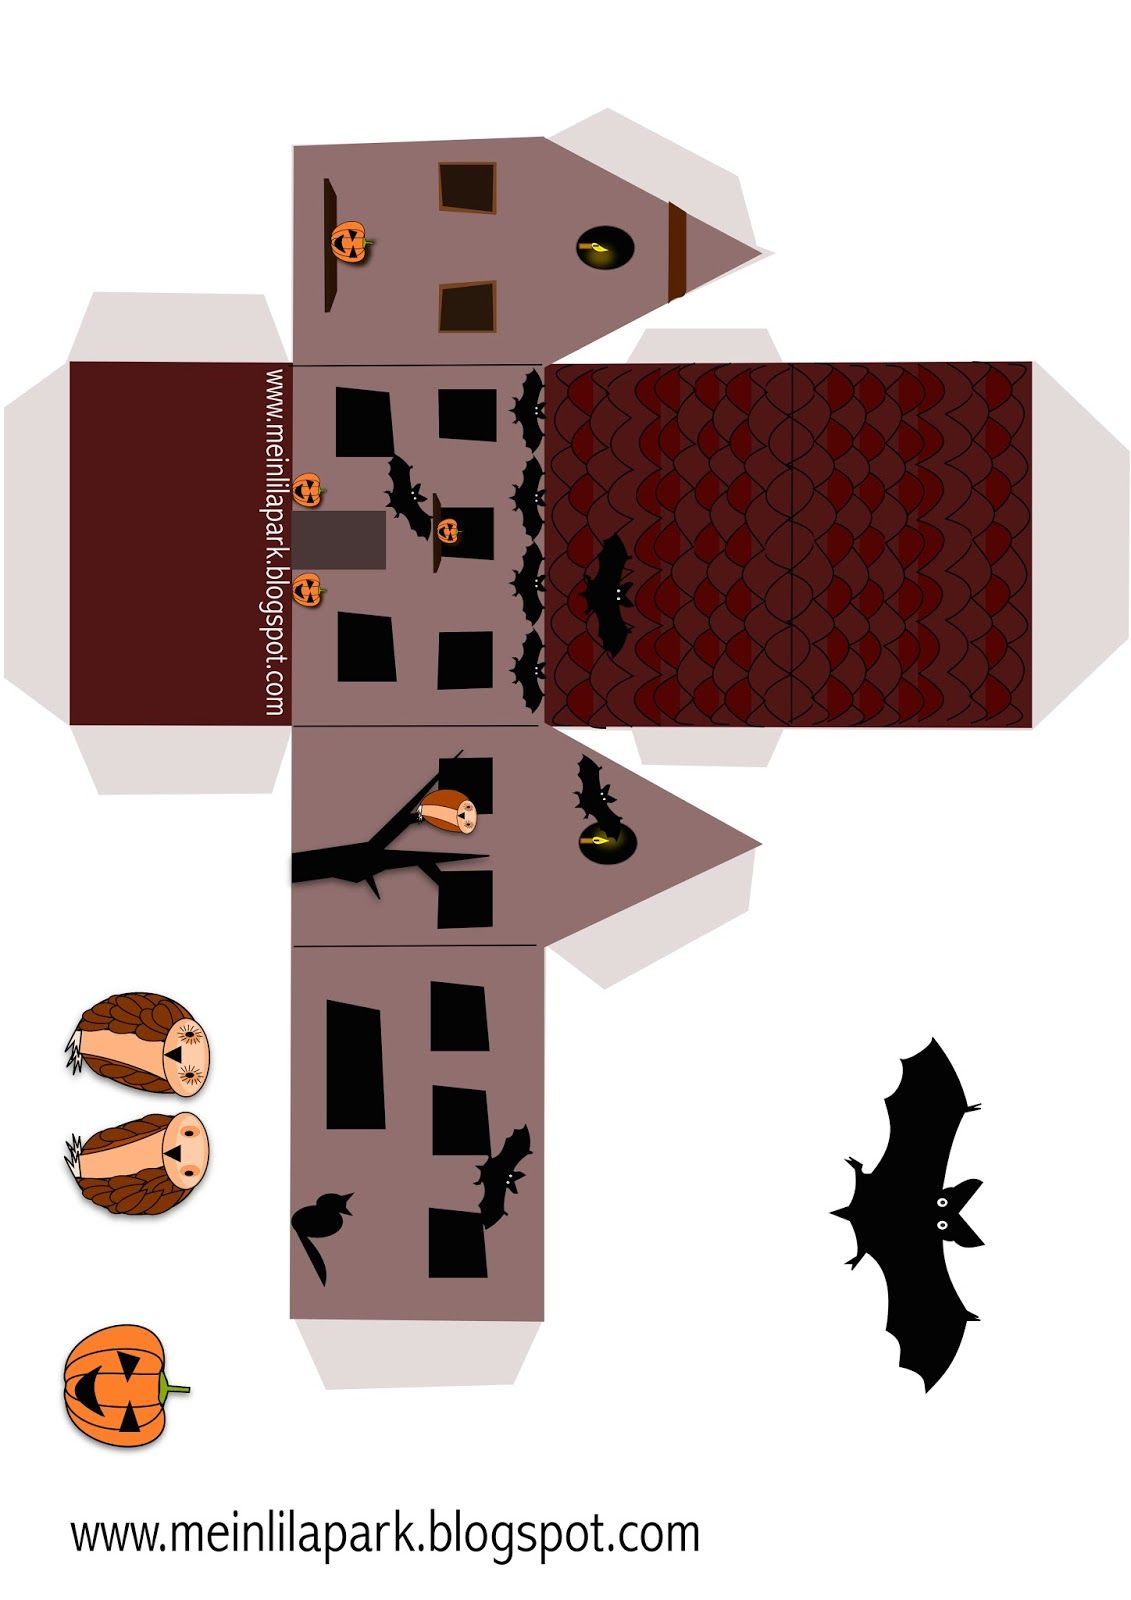 Meinlilapark diy printables and downloads spooky haunted house meinlilapark diy printables and downloads spooky haunted house lantern treat box favour free pronofoot35fo Gallery